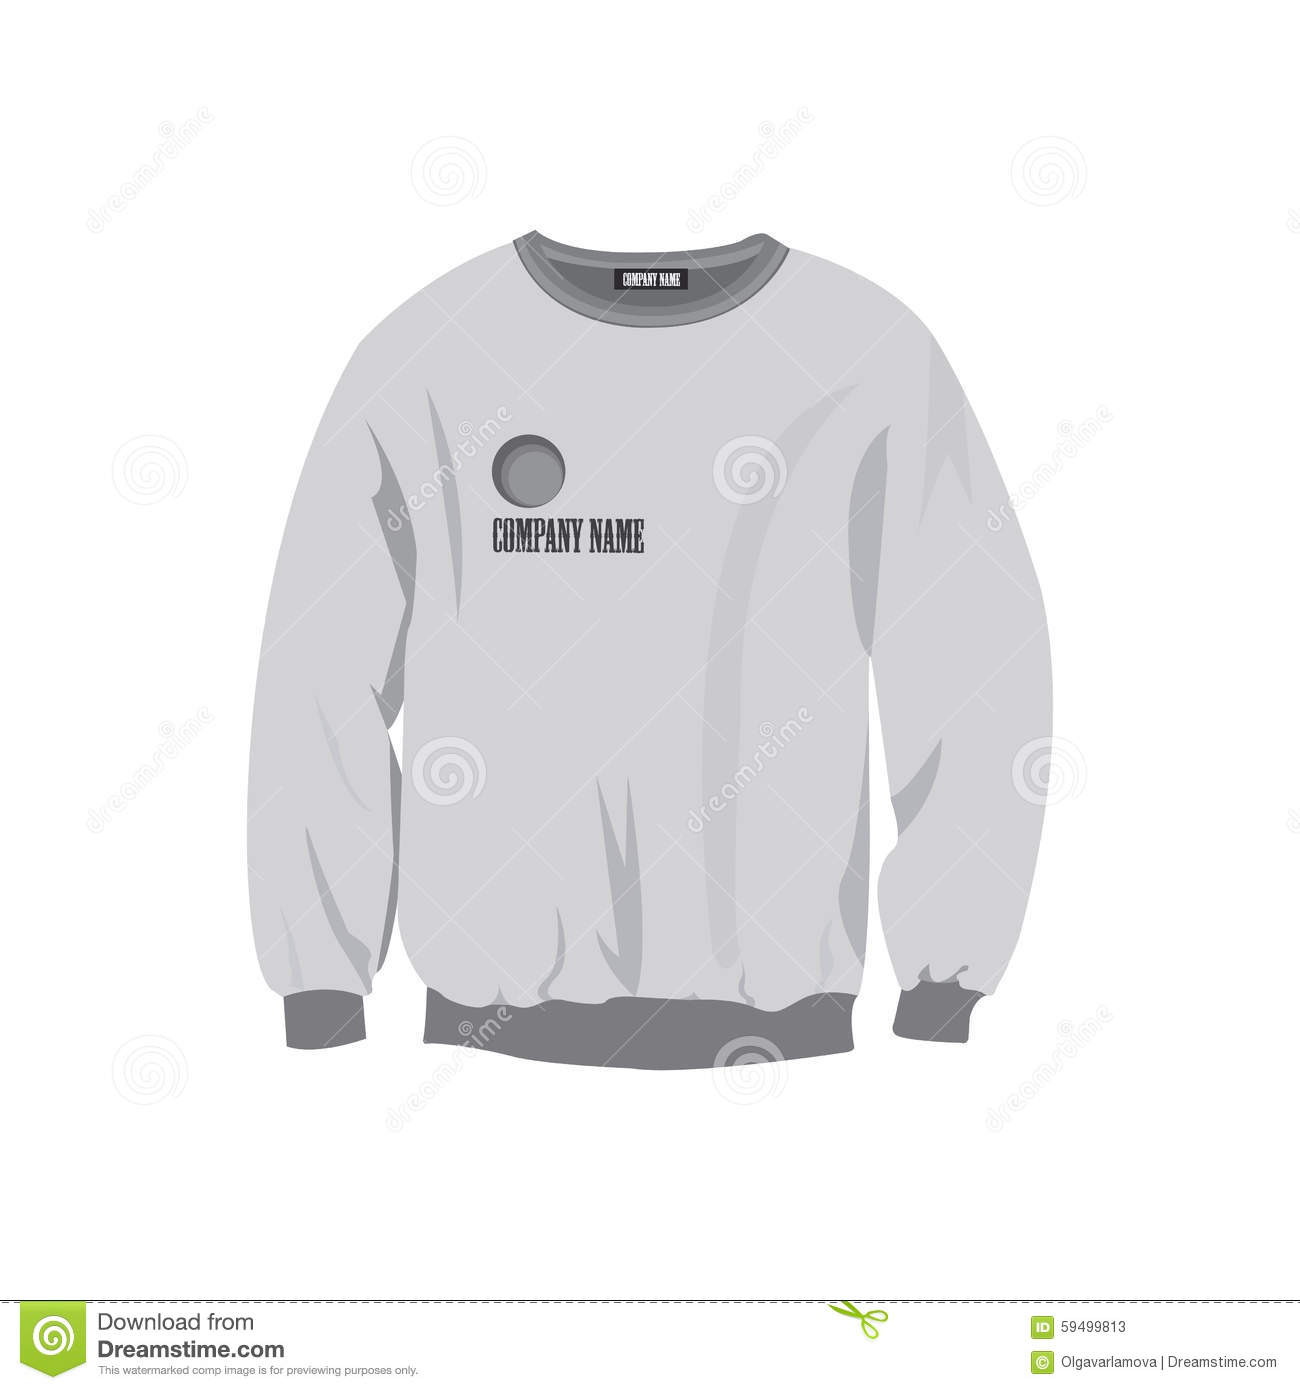 Sweatshirt Design Template Stock Vector - Image: 59499813